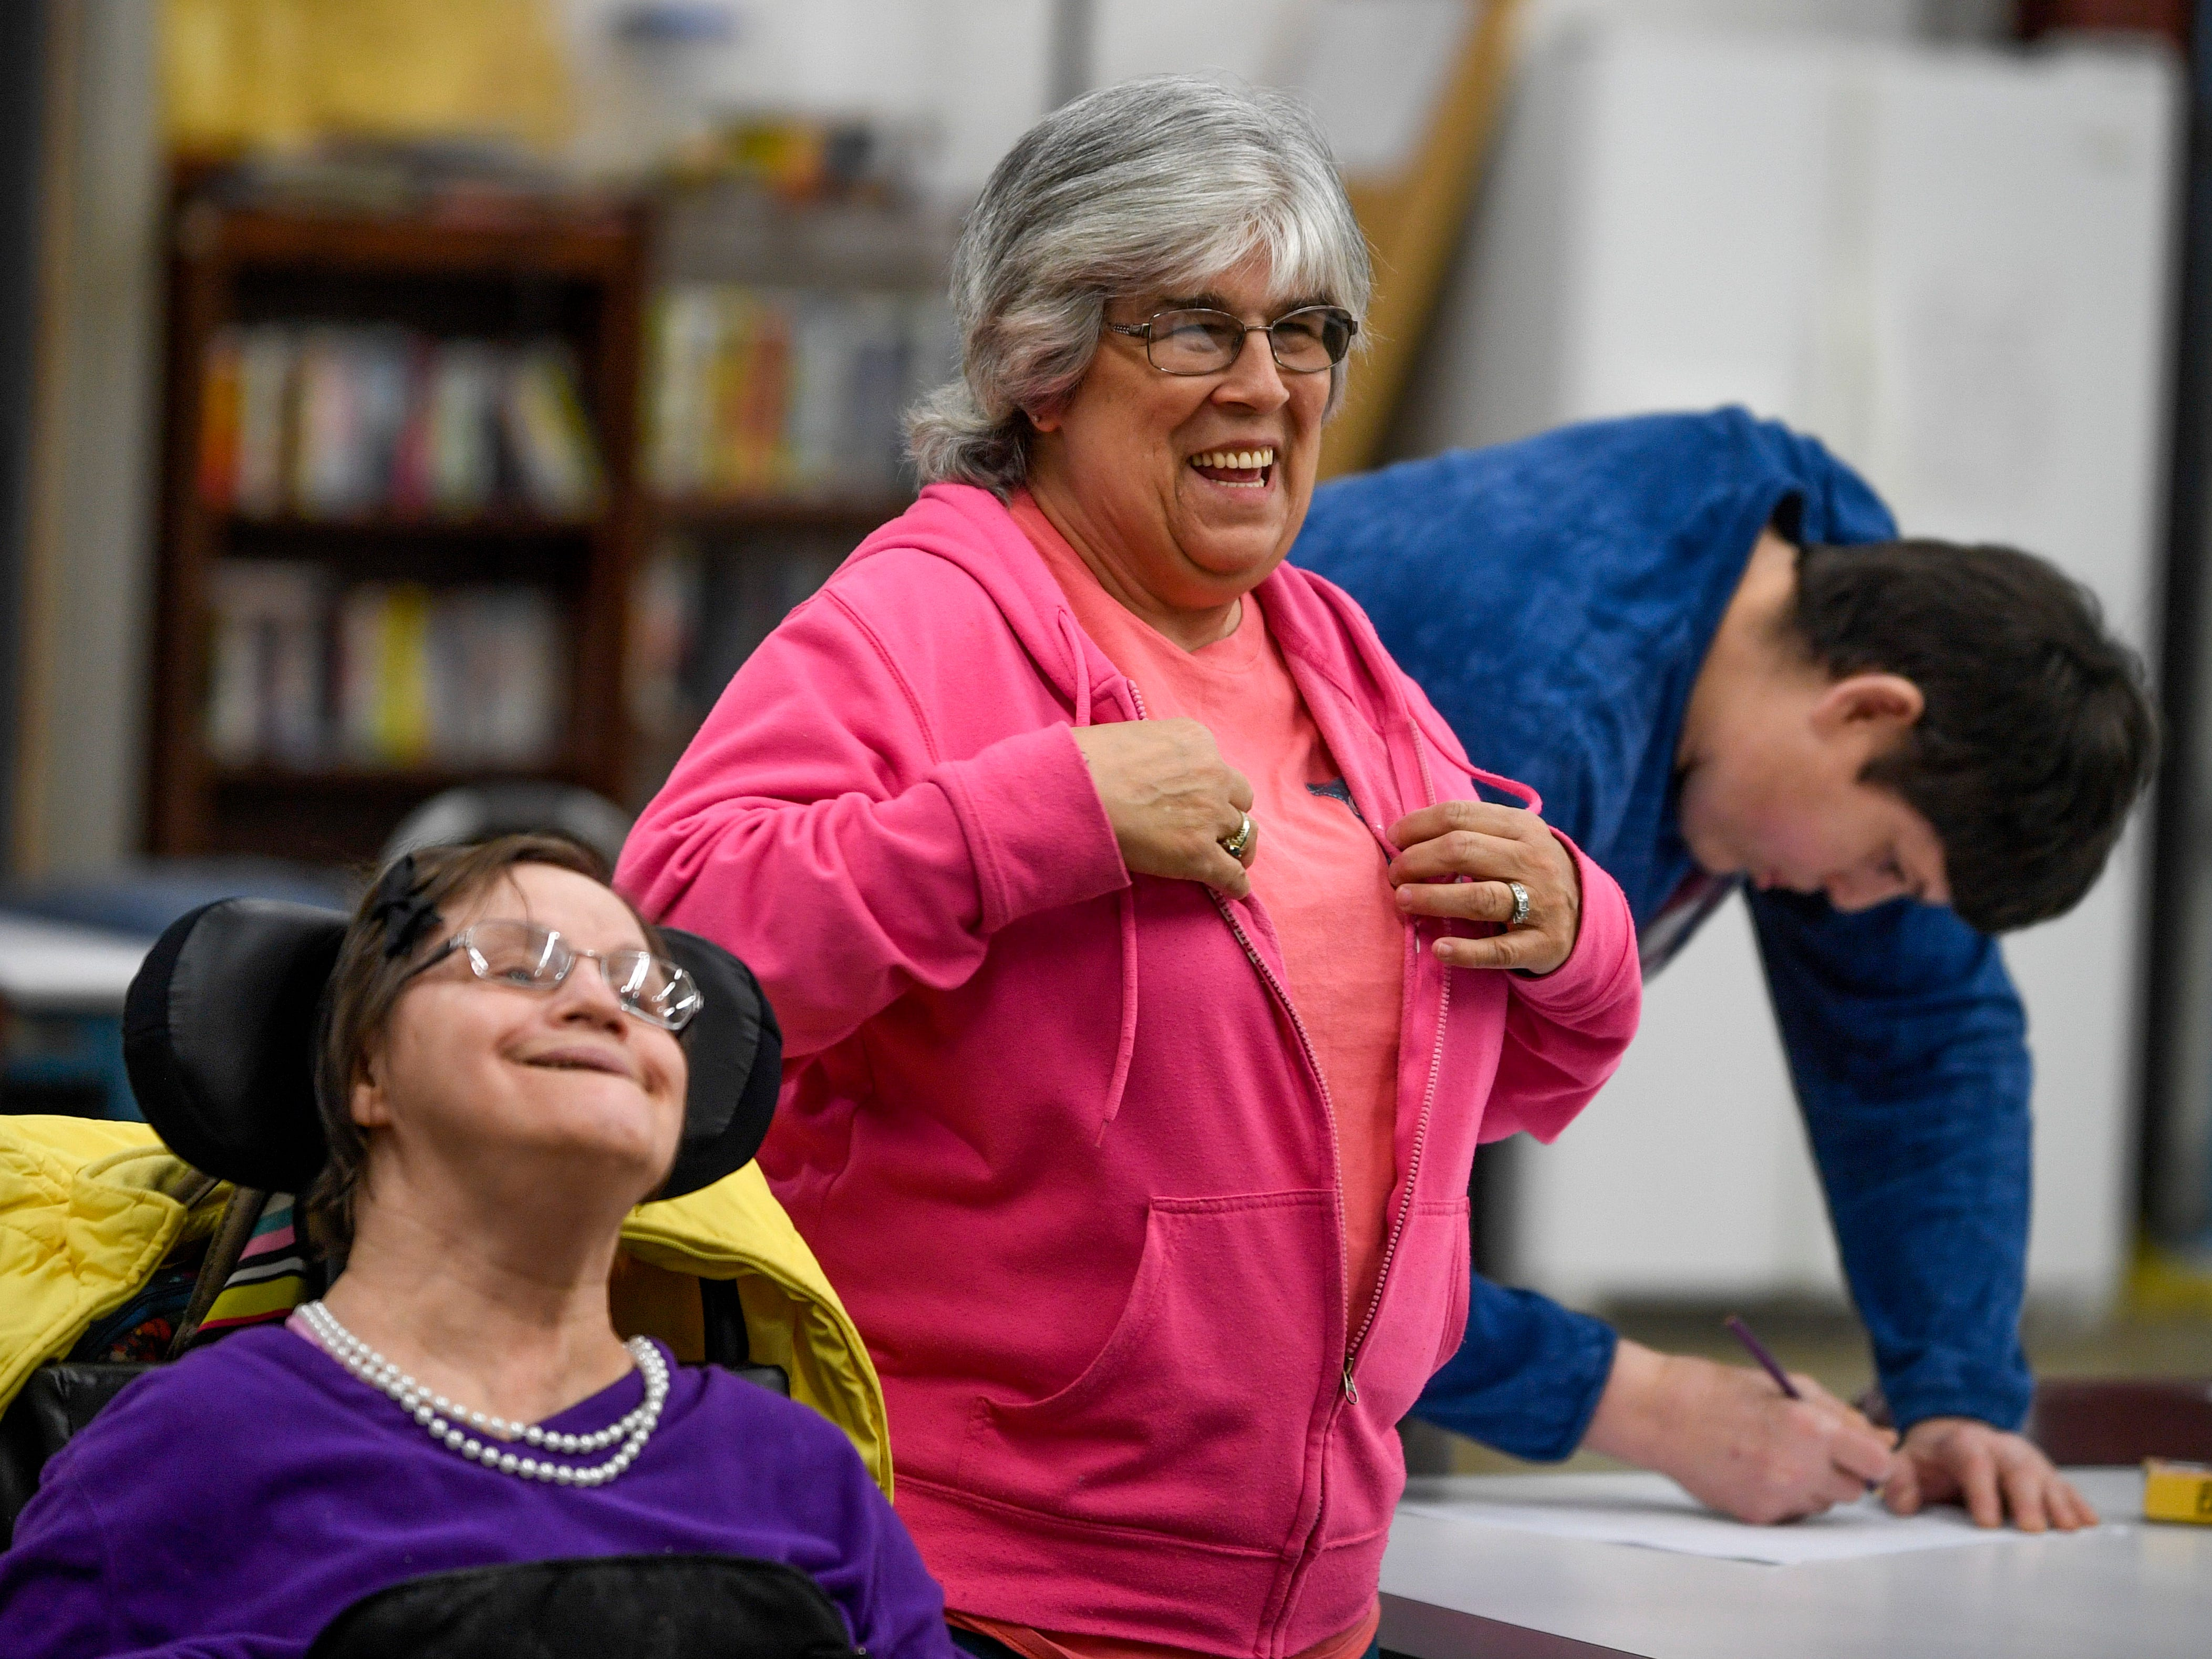 Denise Murphy laughs with students after Linda Davis, left, answers a question during a class at McNairy Developmental Services in Selmer, Tenn., on Thursday, Feb. 21, 2019.